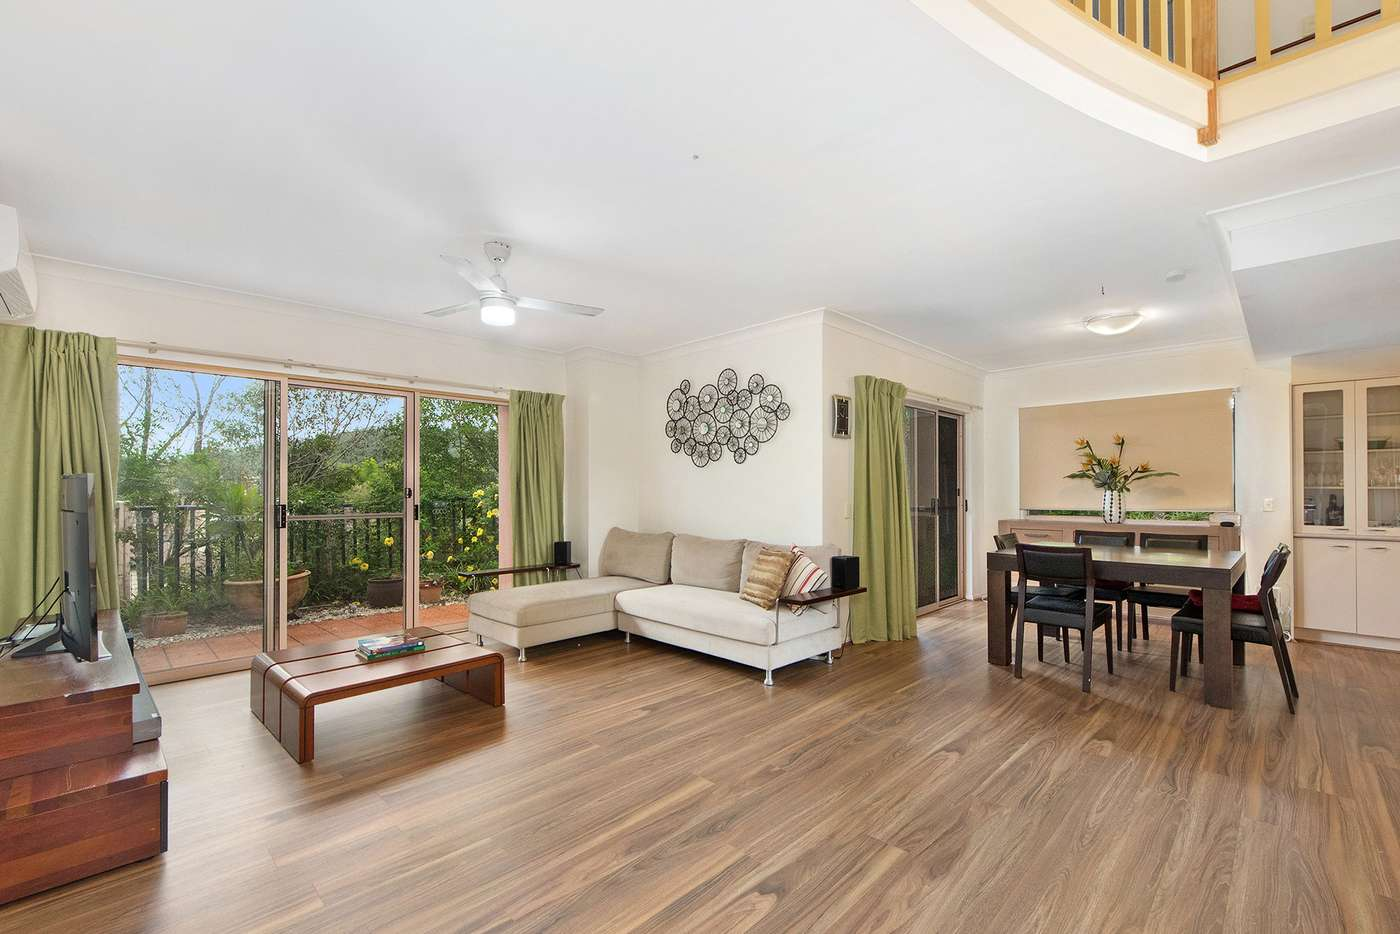 Main view of Homely house listing, 8/3 Fortuna Place, Parkwood QLD 4214